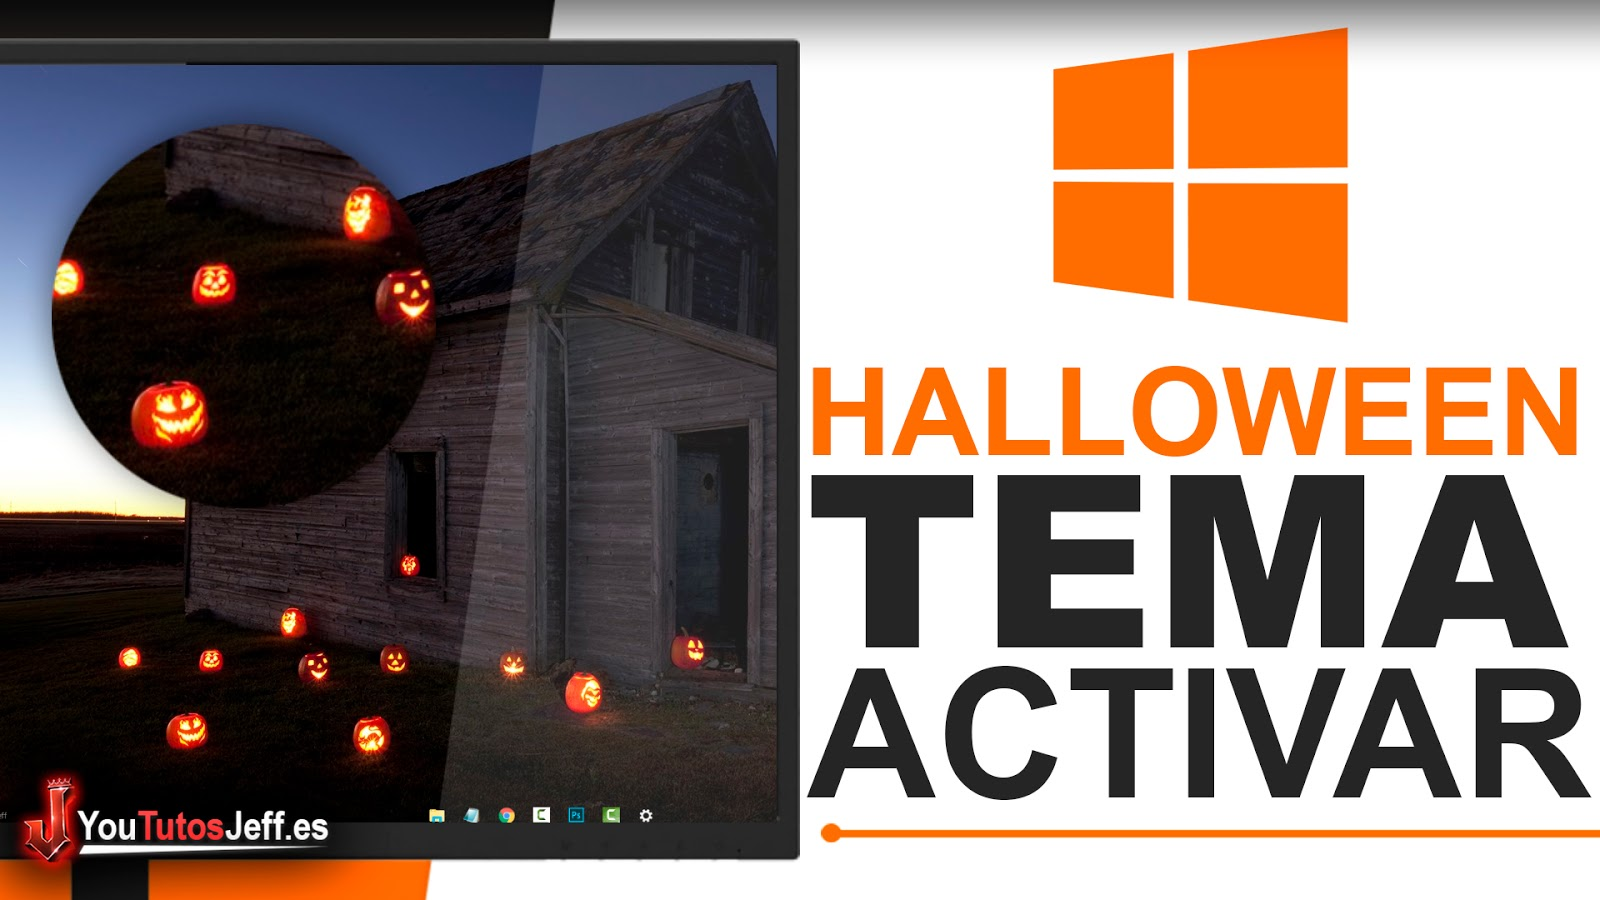 Activar Windows 10 Halloween - Trucos Windows